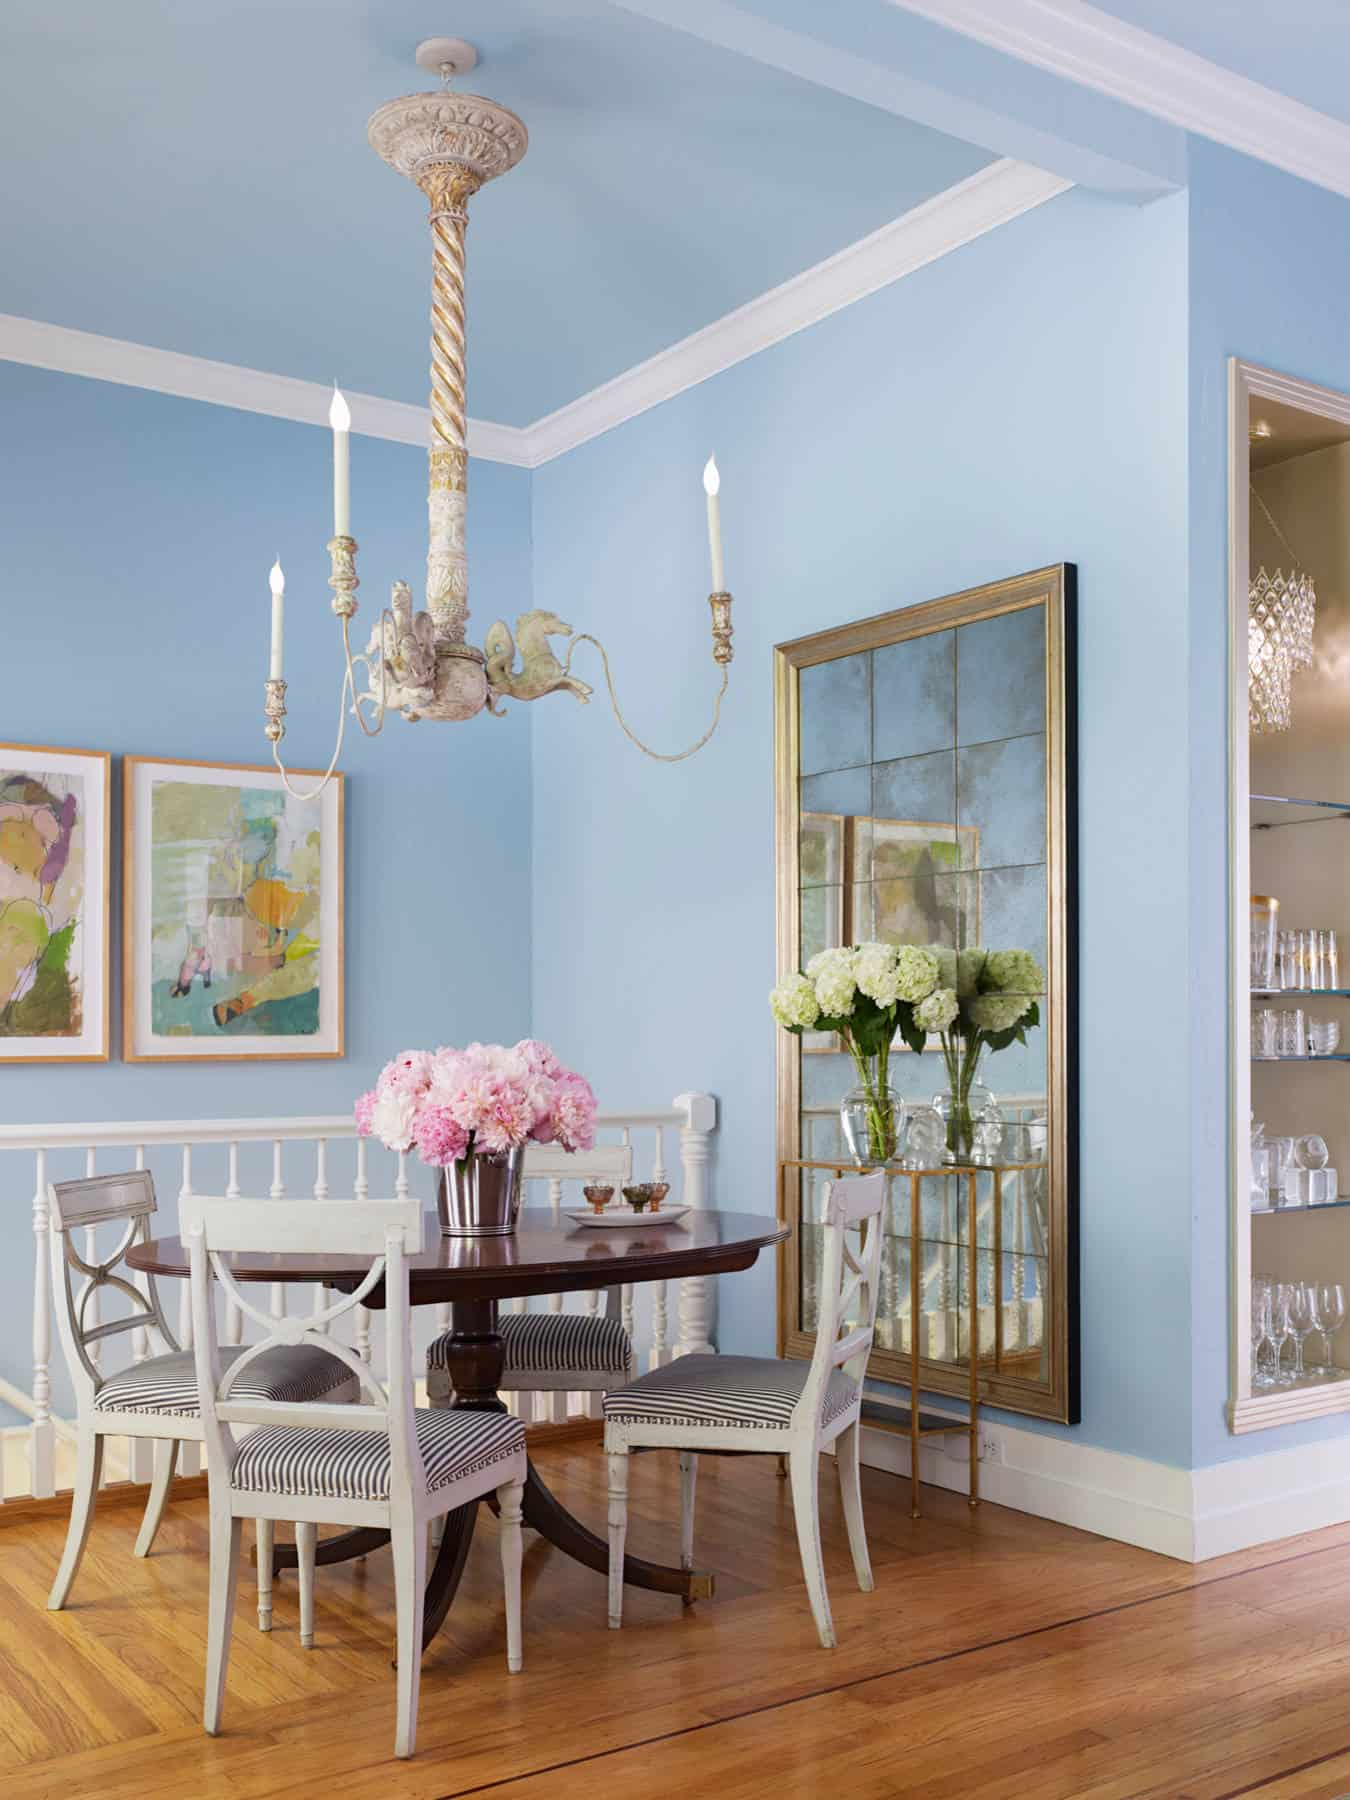 Take it a step further and use this color in your dining room space for a feminine charm that flows throughout.